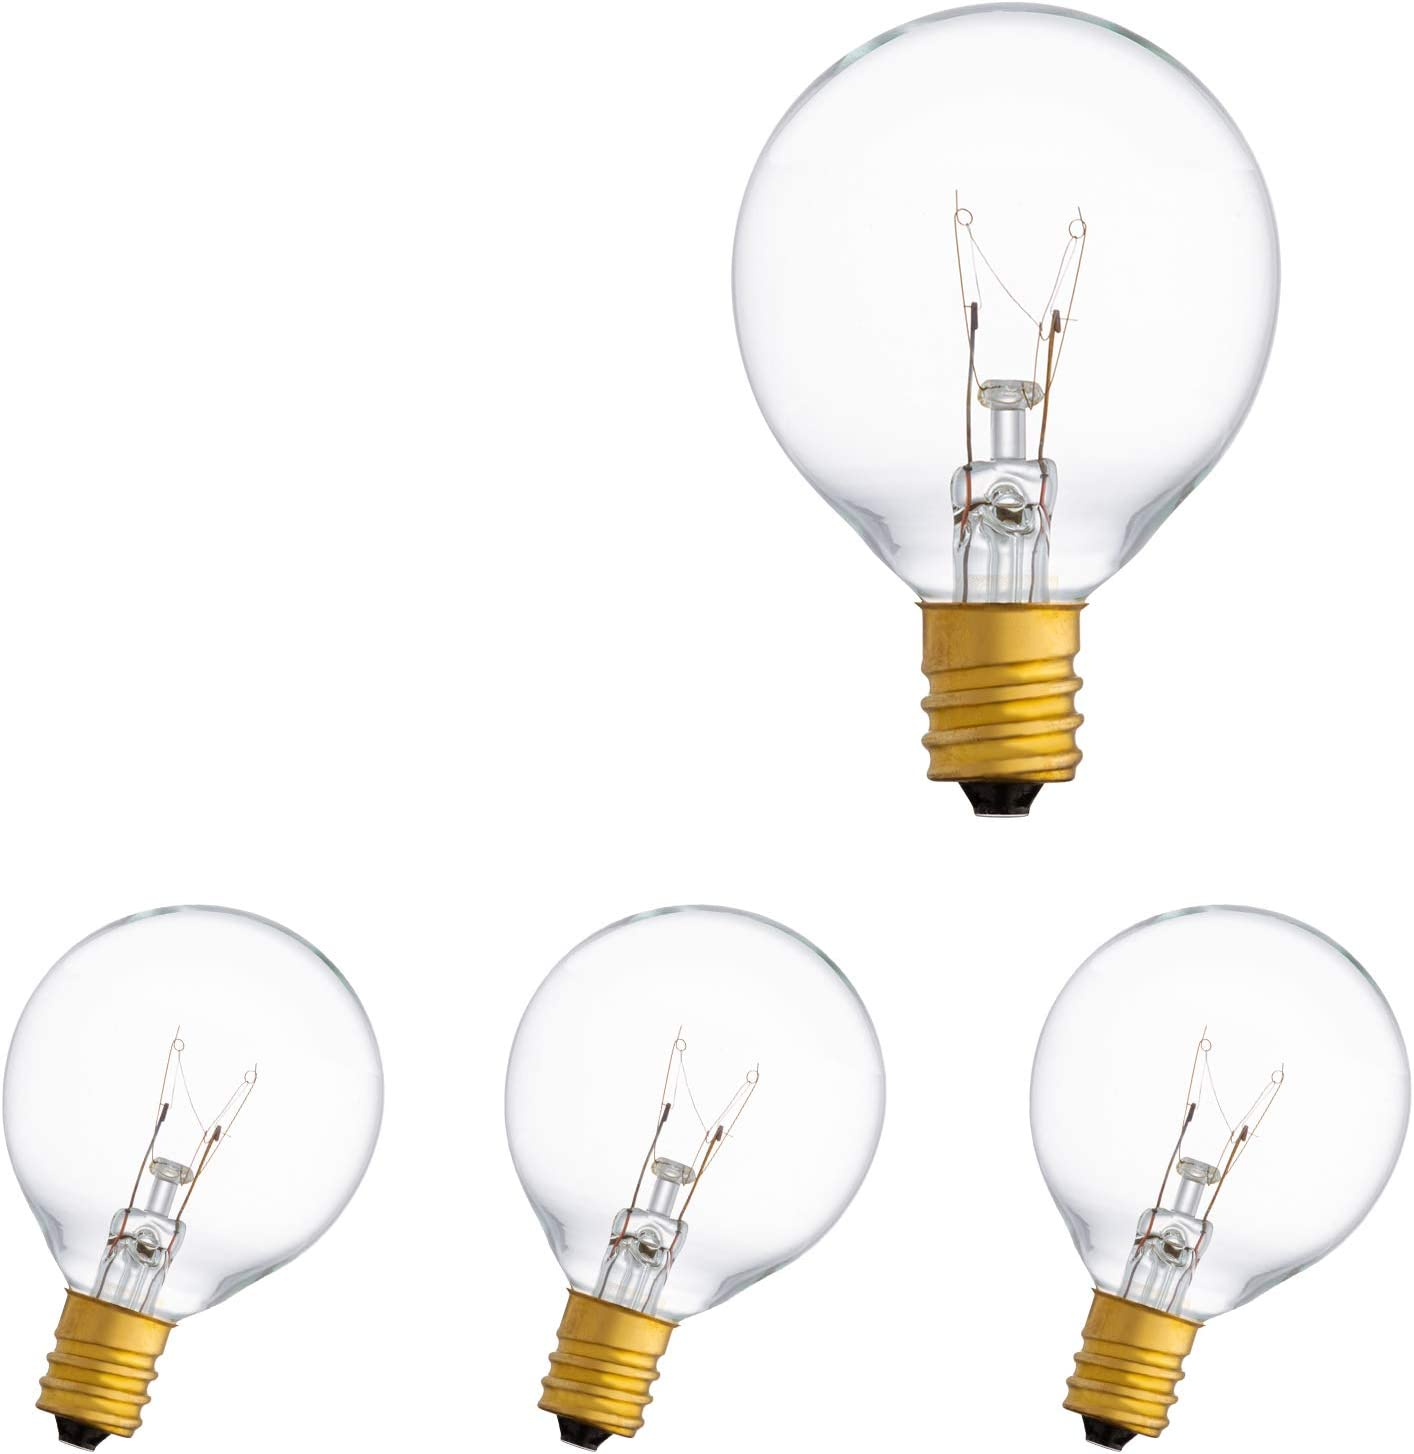 Recommended Super beauty product restock quality top Amico G40 Incandescent Bulbs 4 Replacement Pack